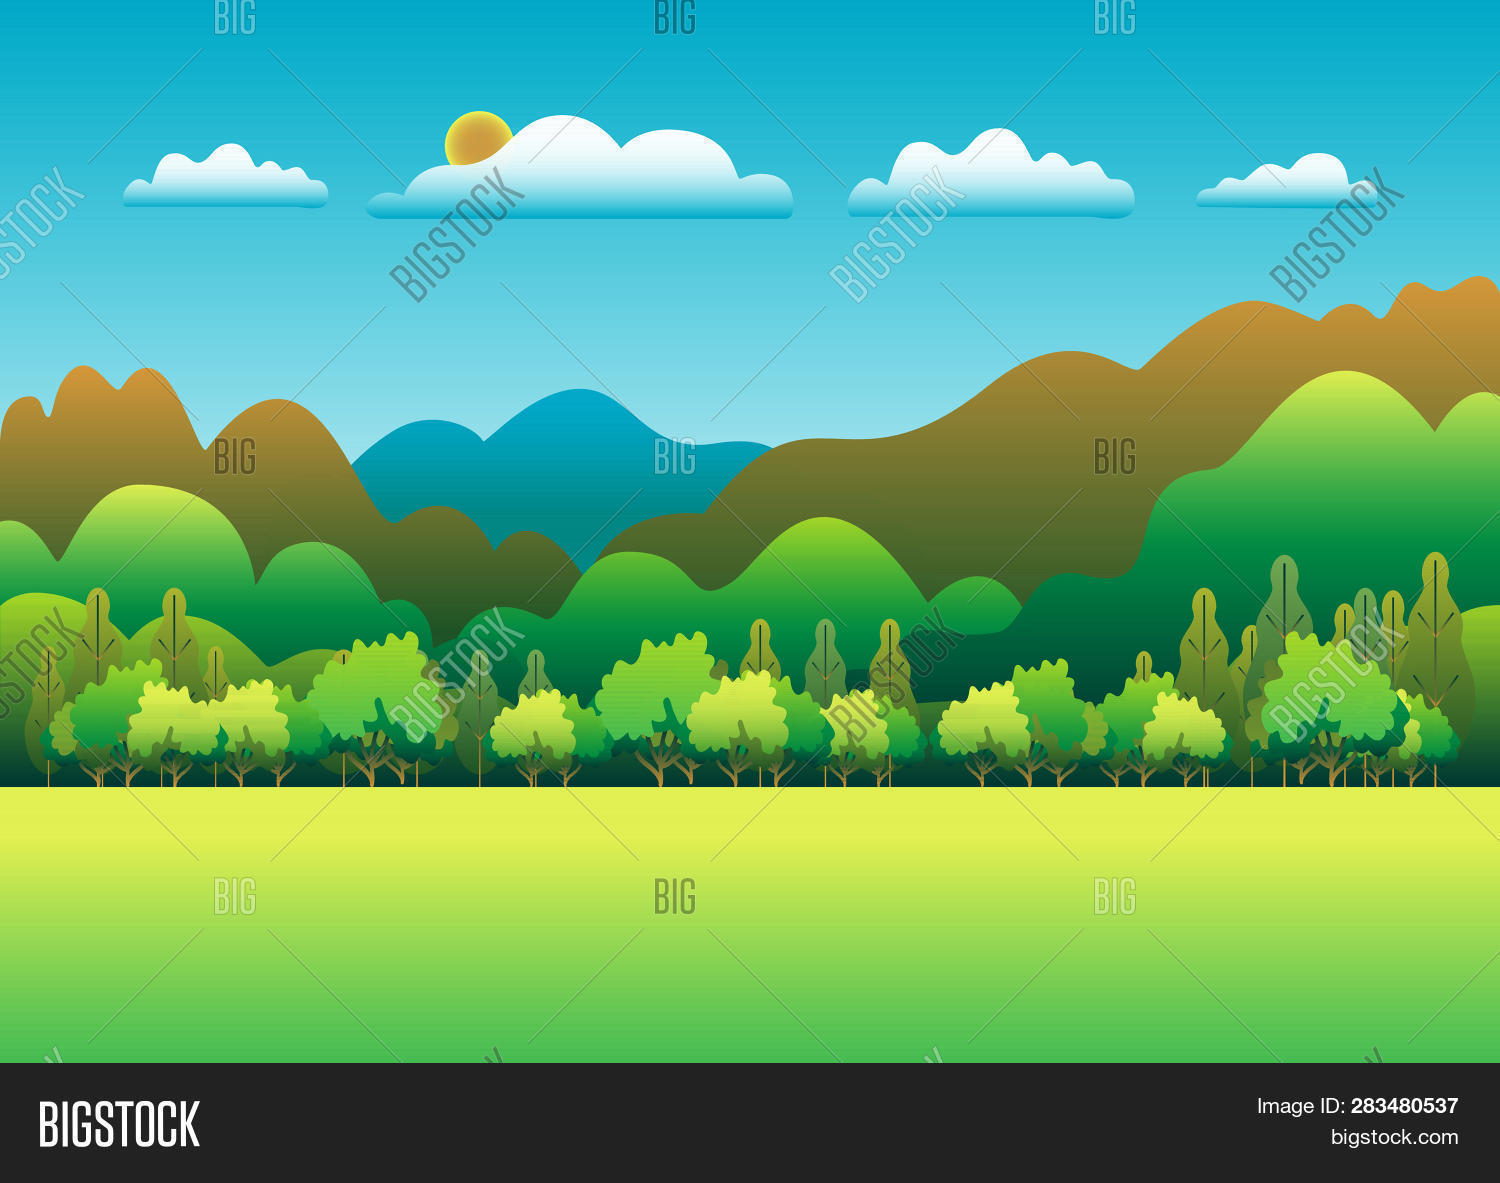 Hills Mountains Vector Photo Free Trial Bigstock